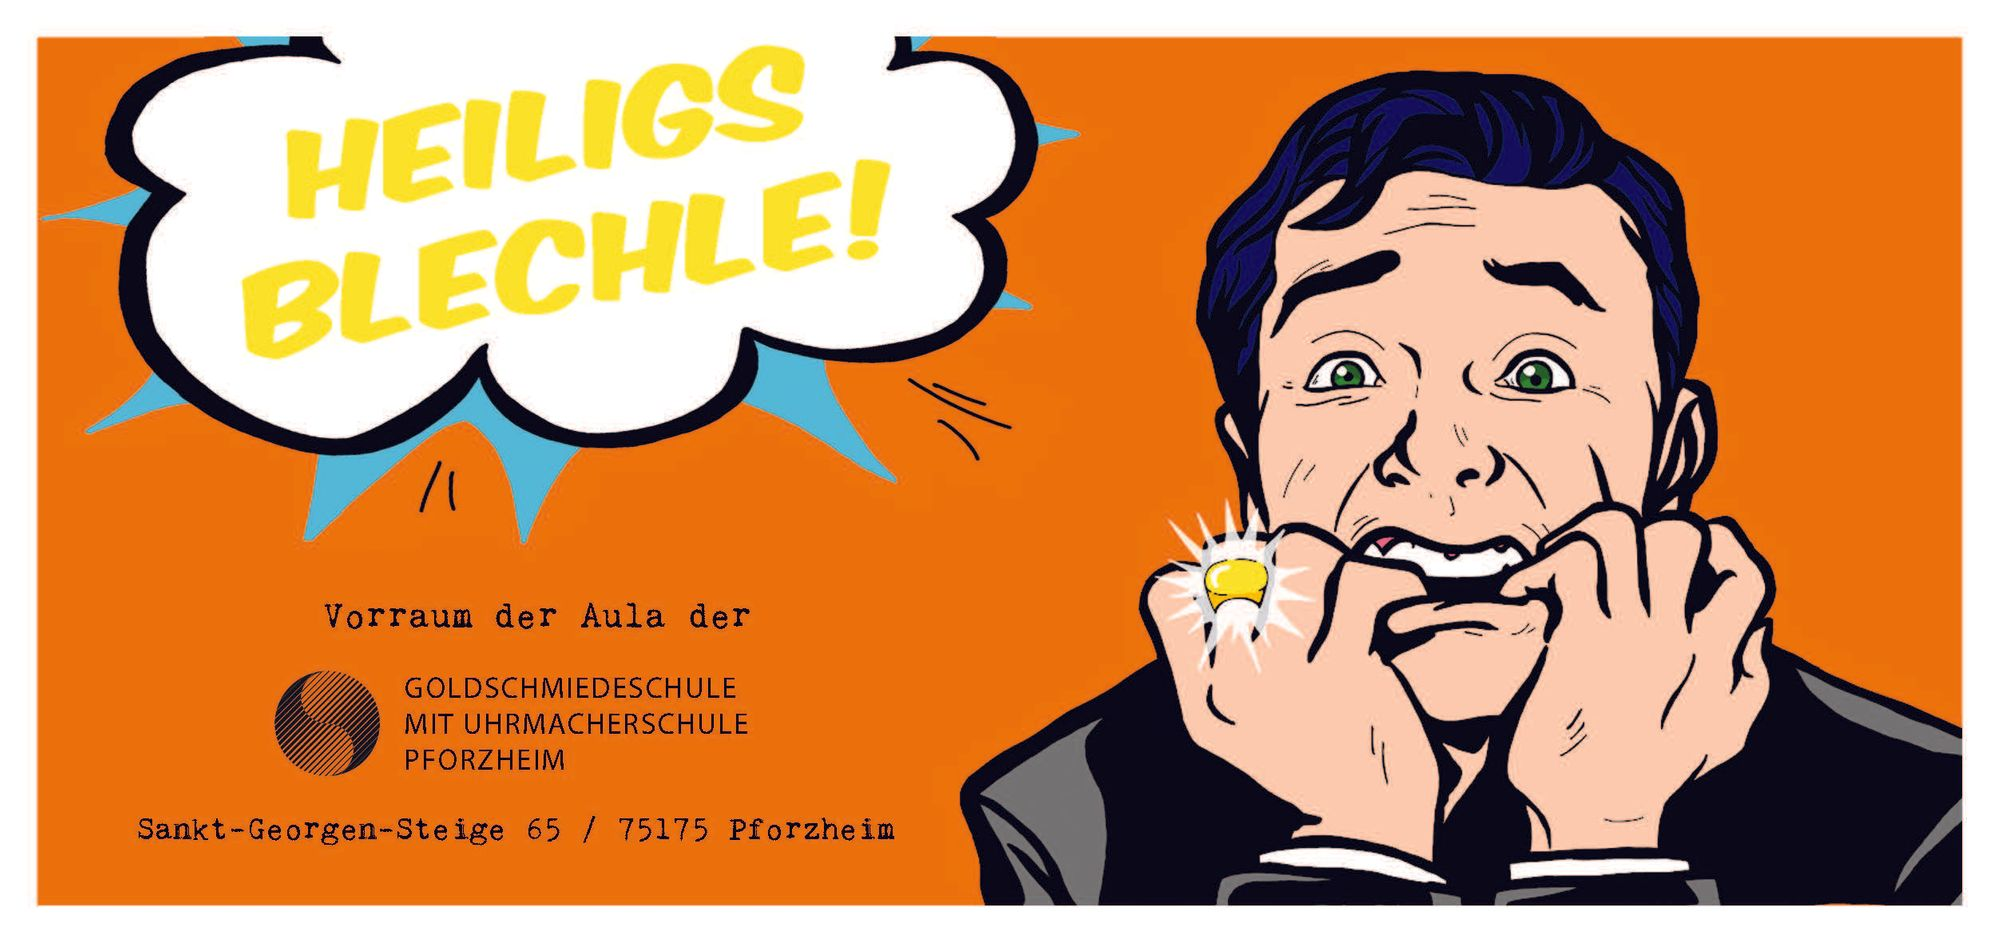 Heiligs Blechle